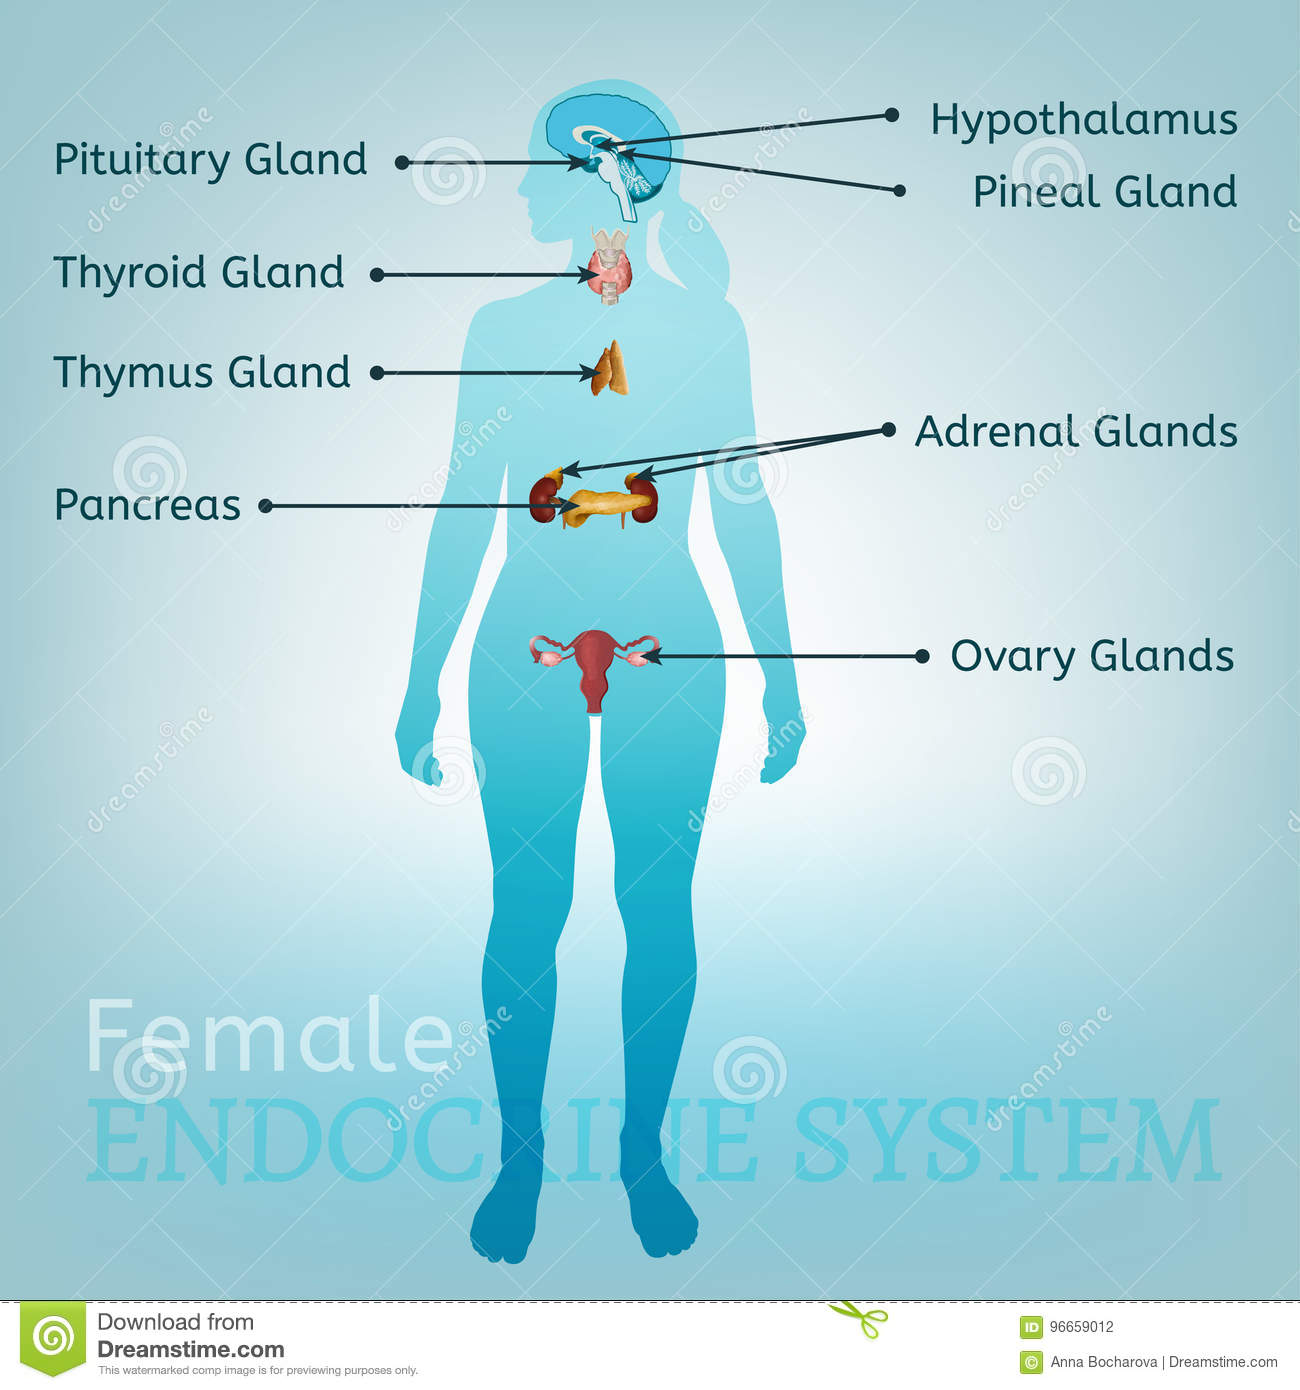 Endocrine System Woman Stock Vector Illustration Of Hormone 96659012